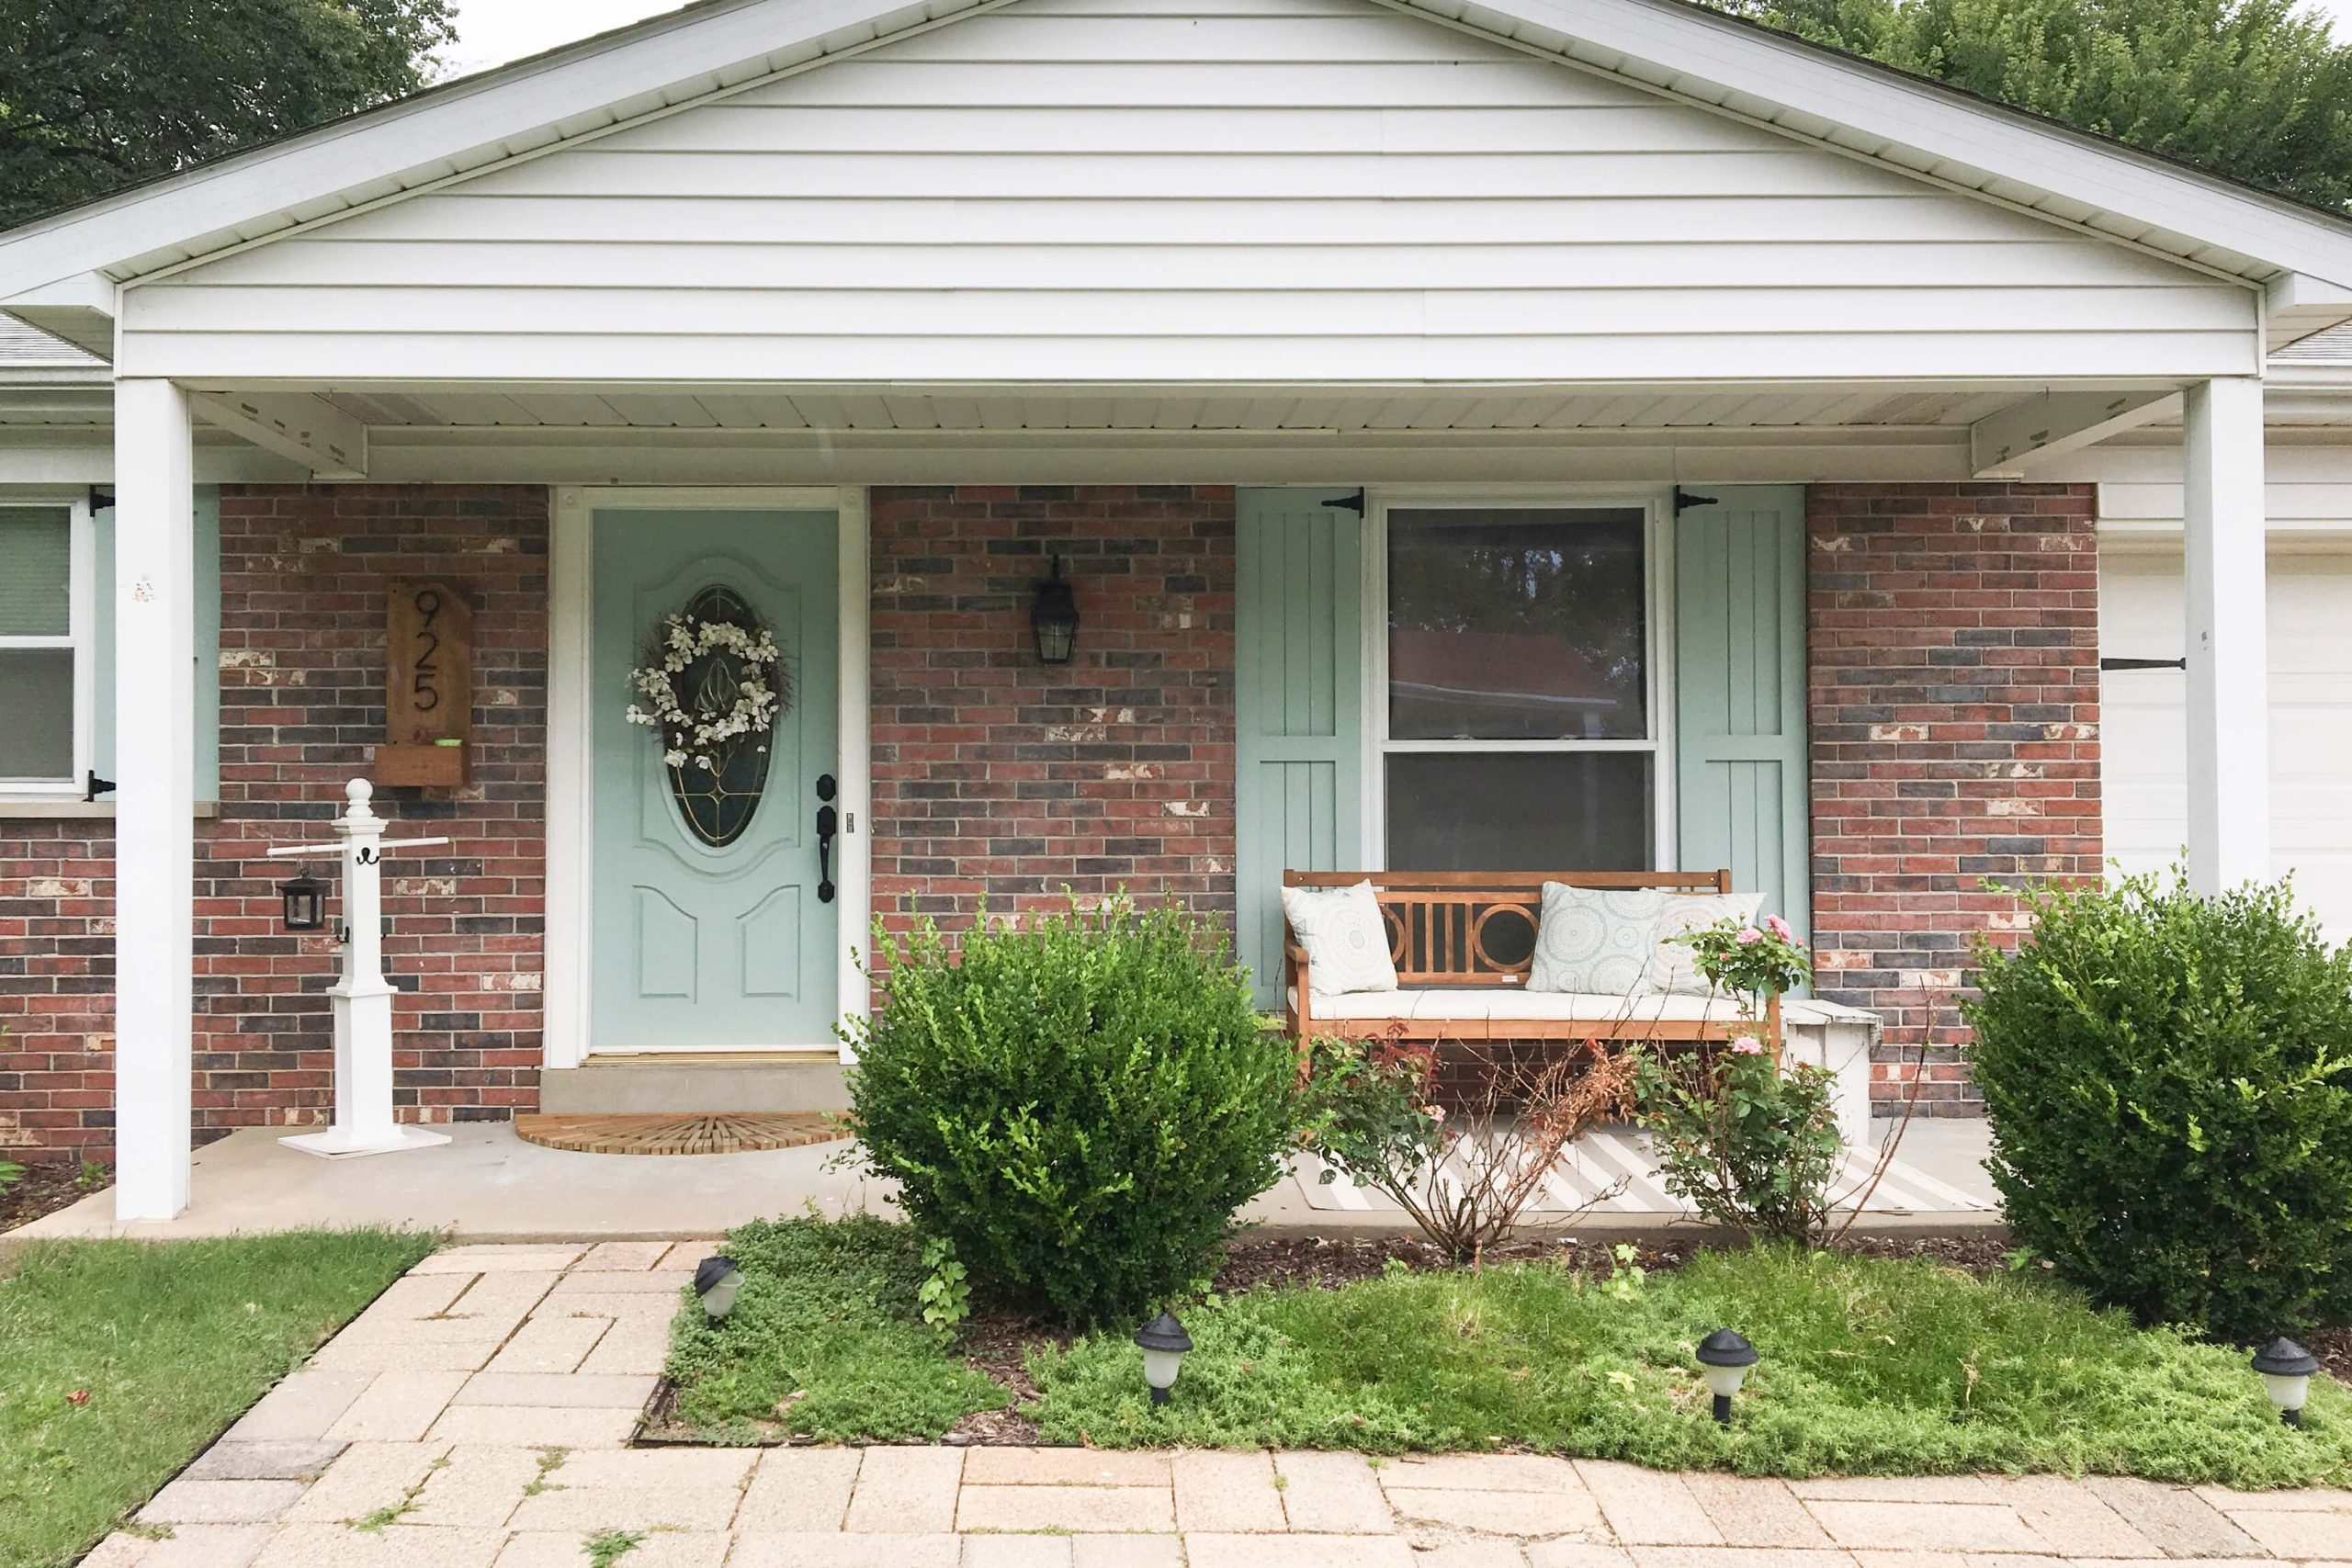 CHANGE THE SHADE FOR PORCH COLUMN MAKEOVER IDEAS BEFORE